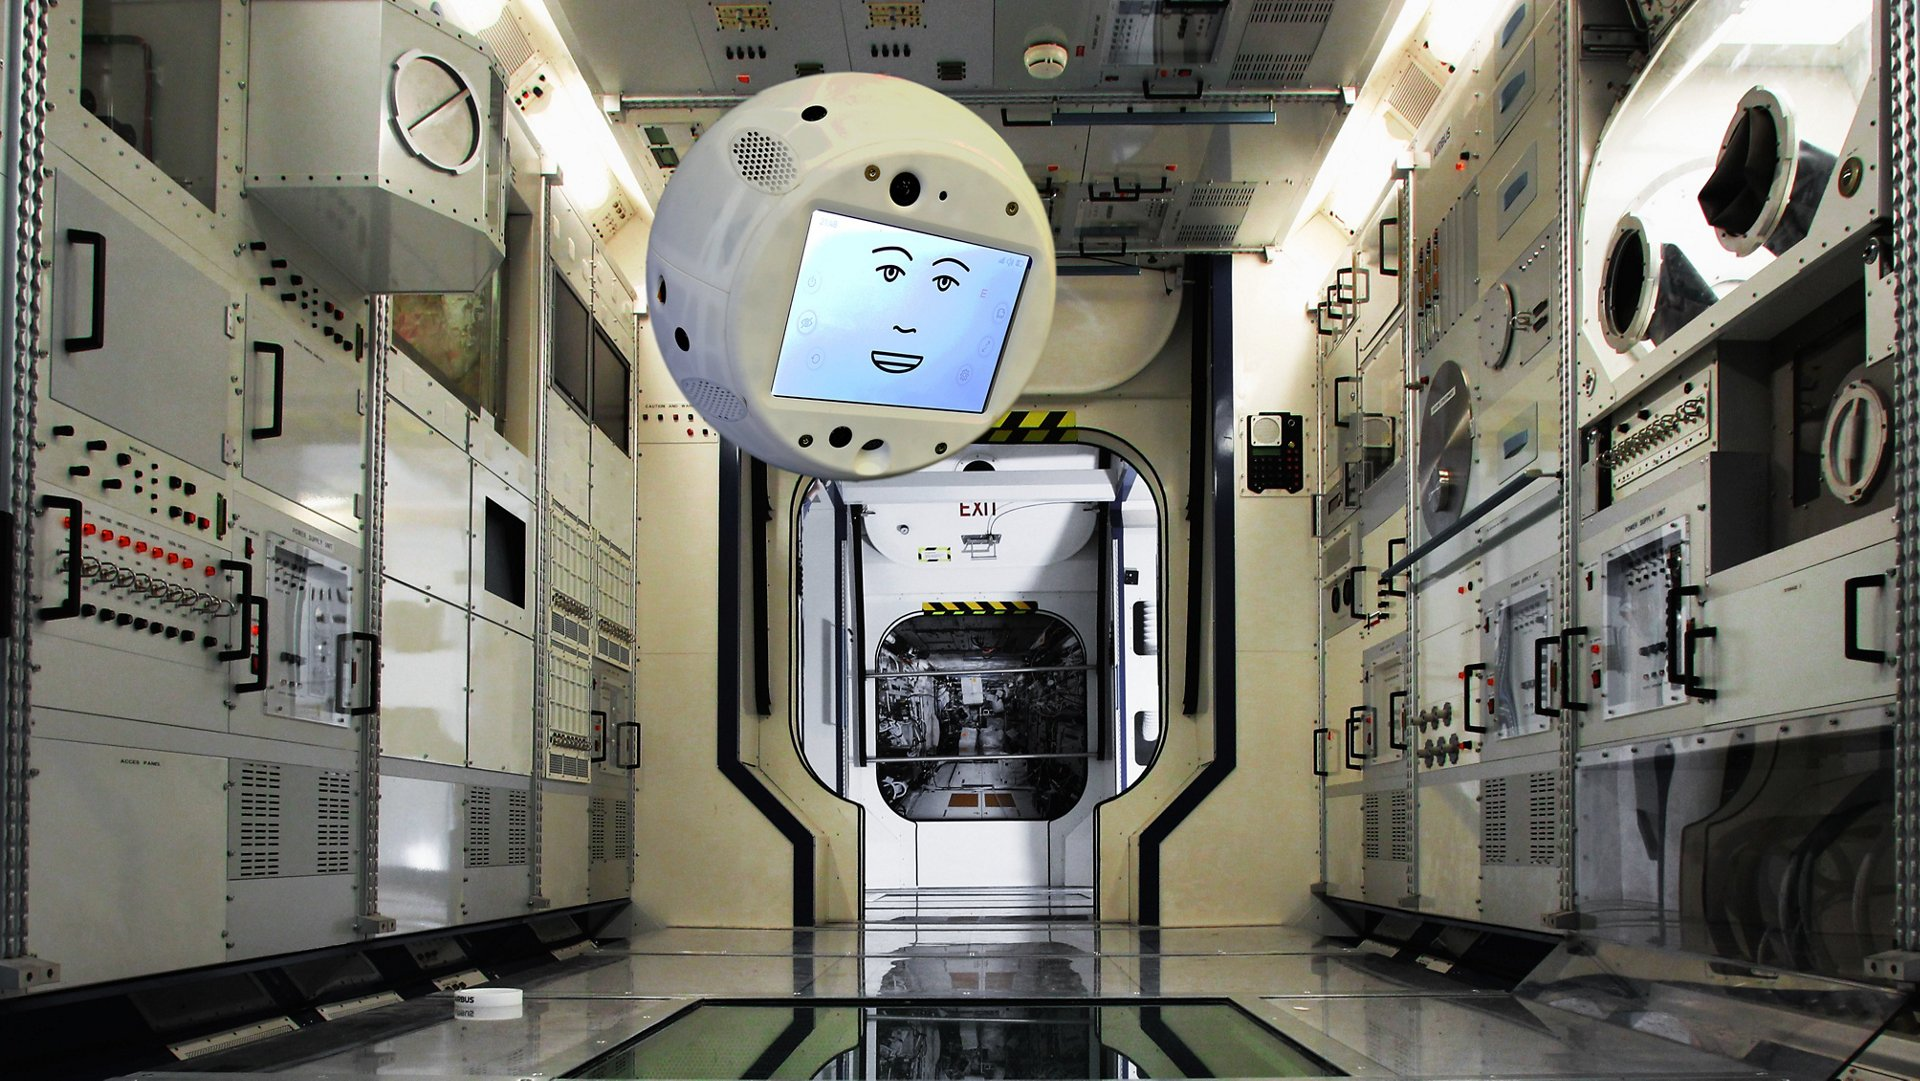 This spherical robot is an AI assistant for the International Space Station